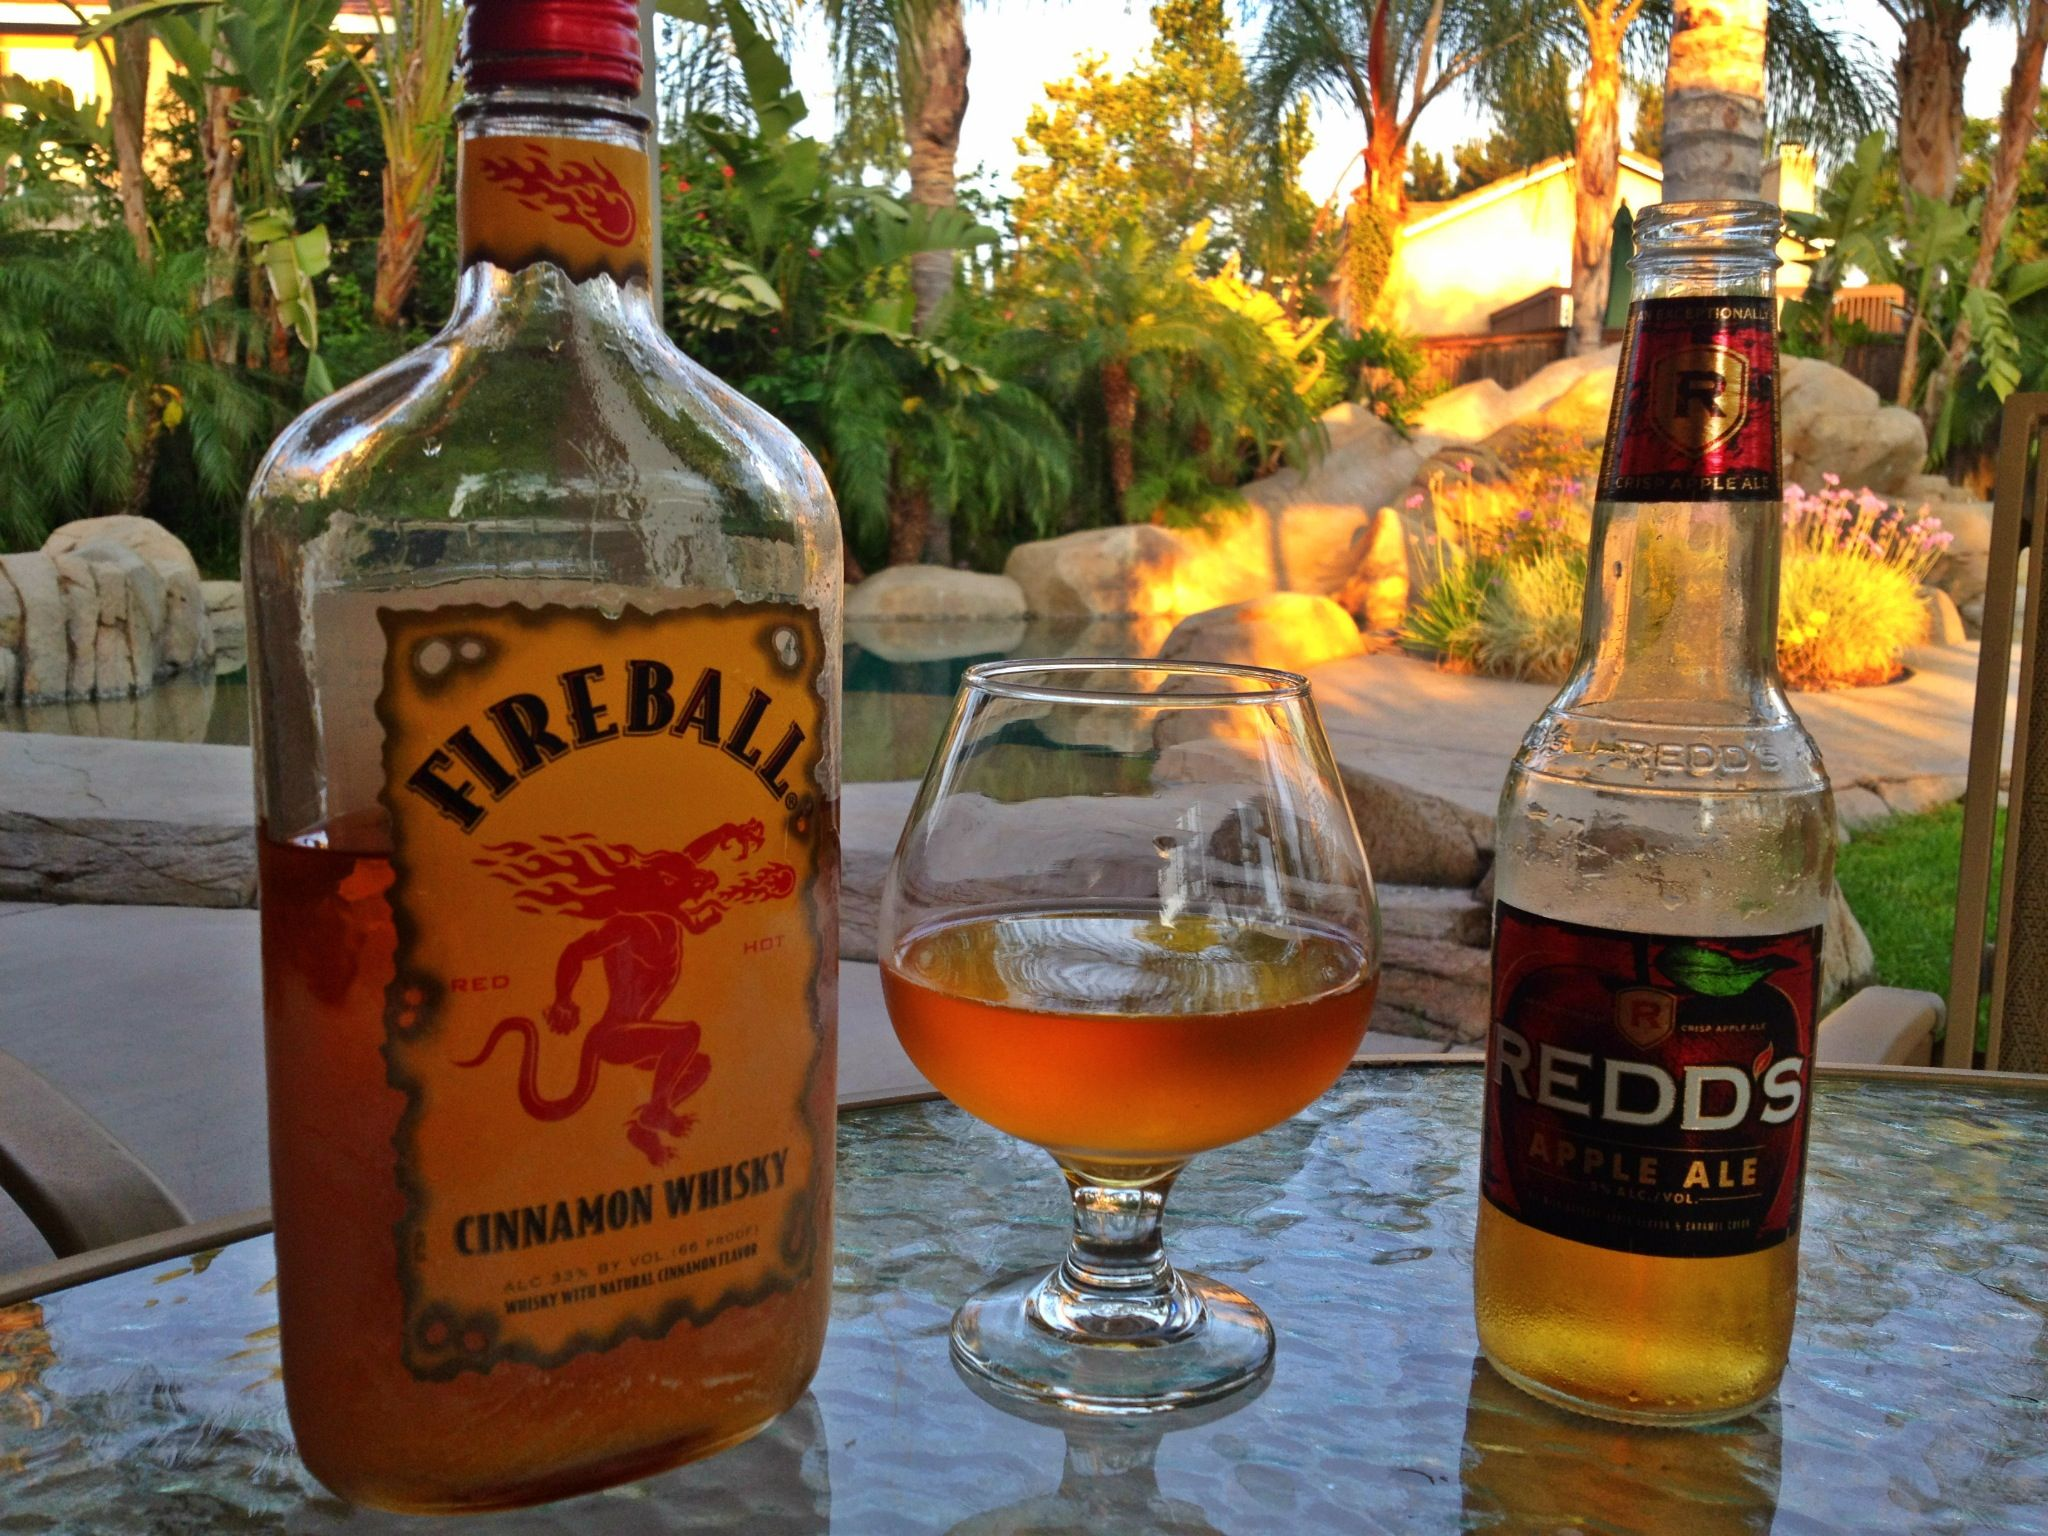 Redd's Apple Ale and Fireball Whisky | Drinks and Smoothies